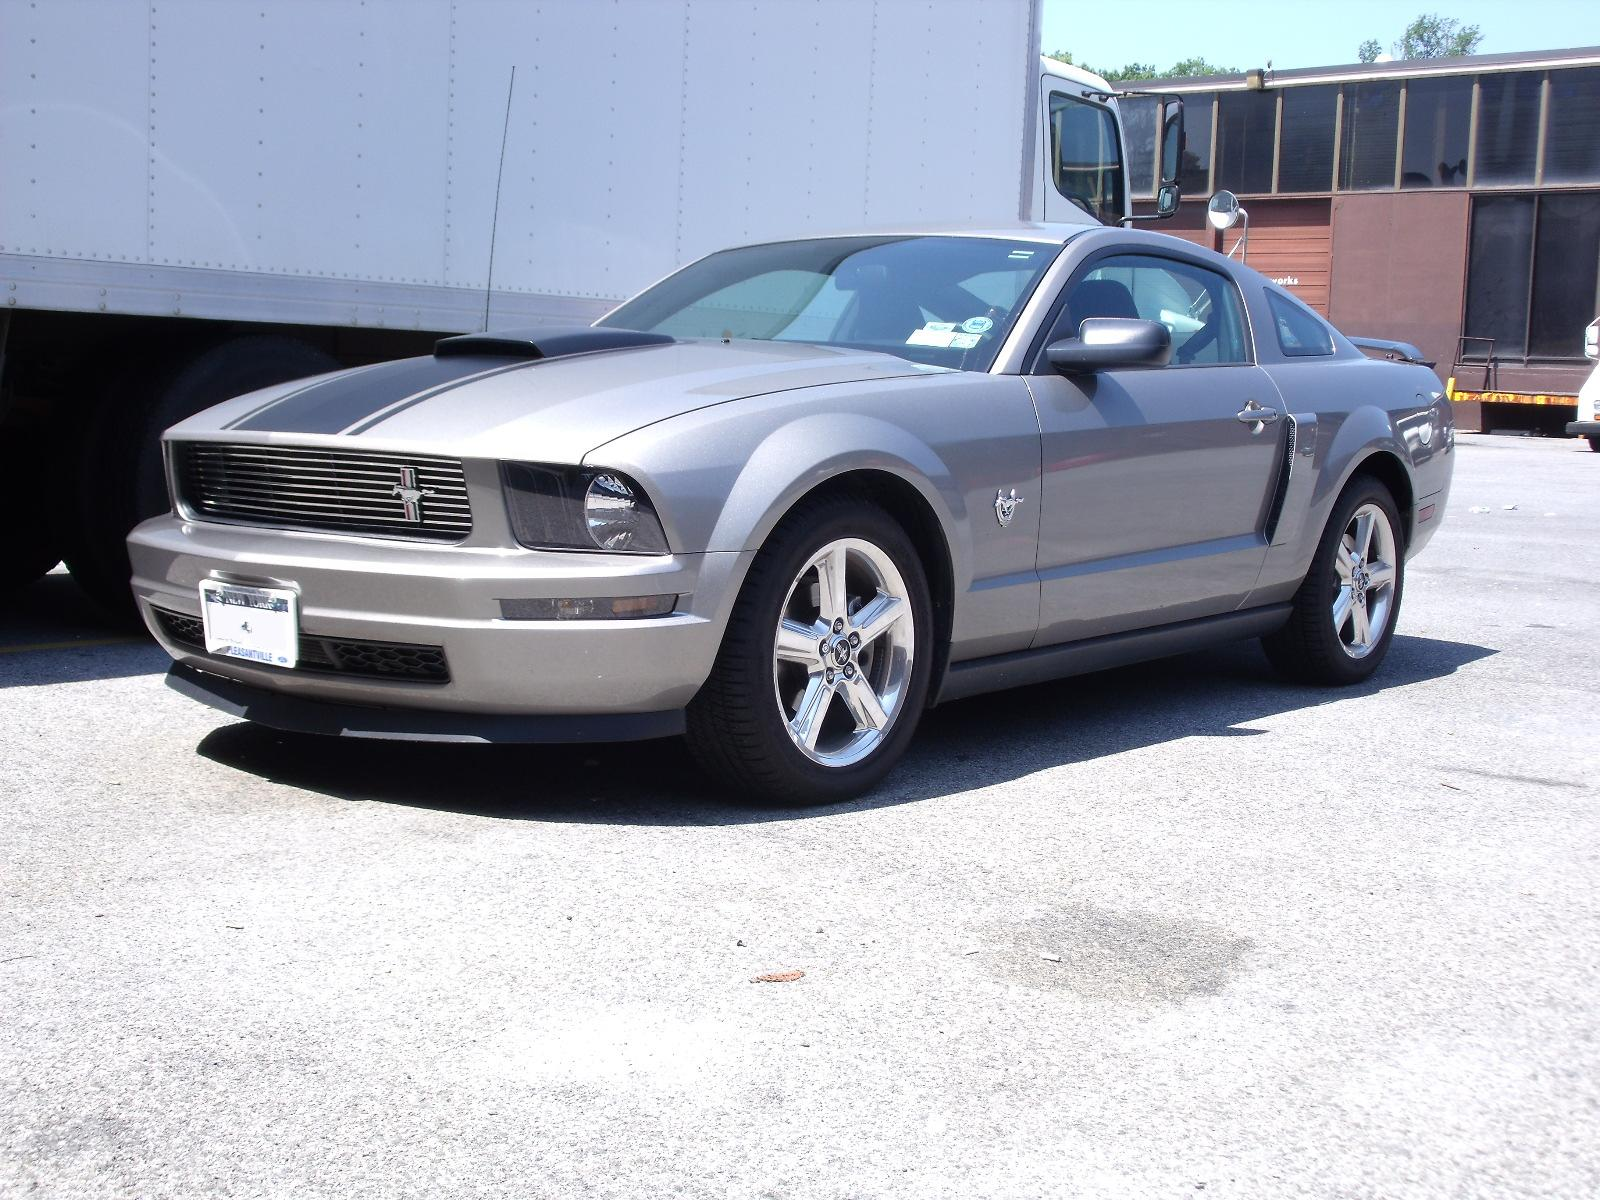 2009 Ford Mustang Blue Picture of 2009 Ford Mustang